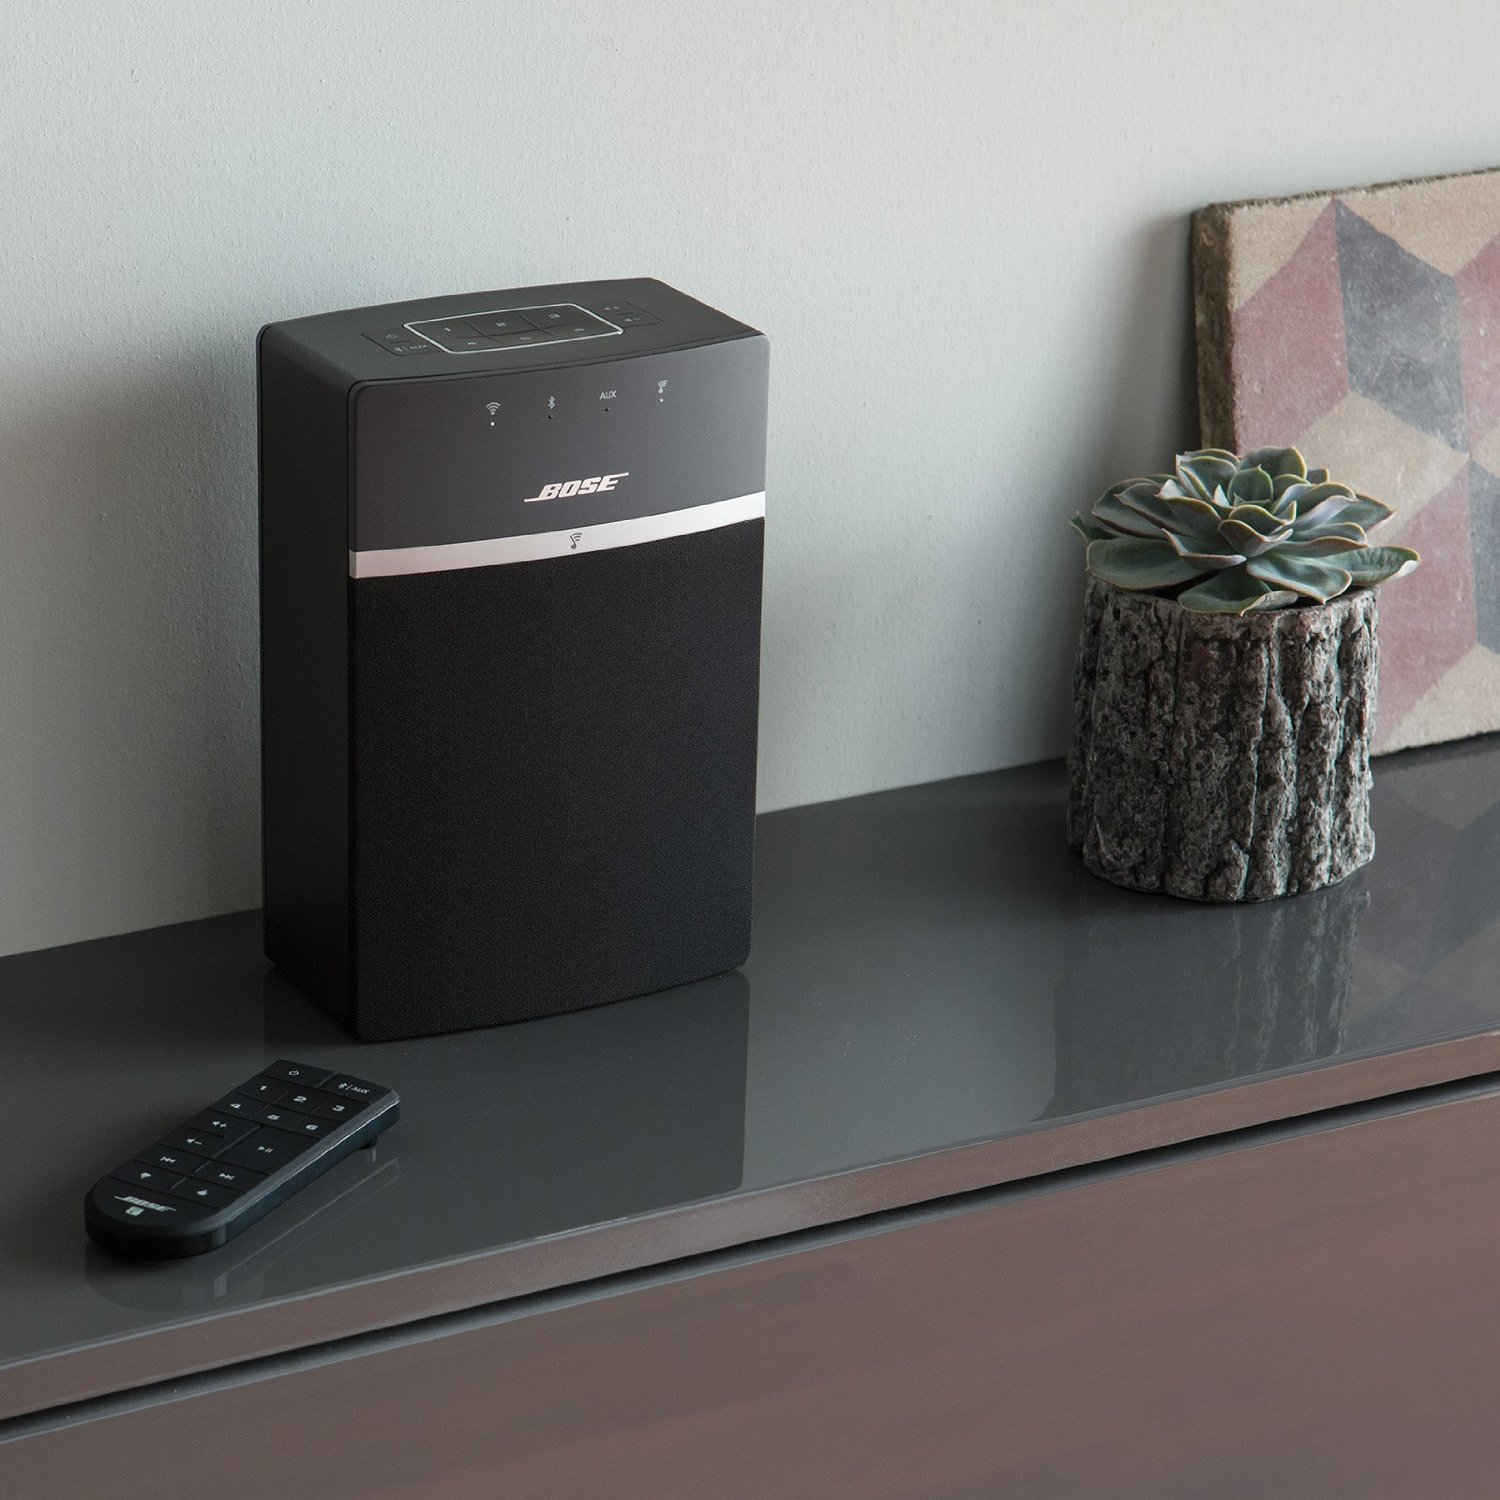 Loa không dây Bose SoundTouch 10 Wireless Music System